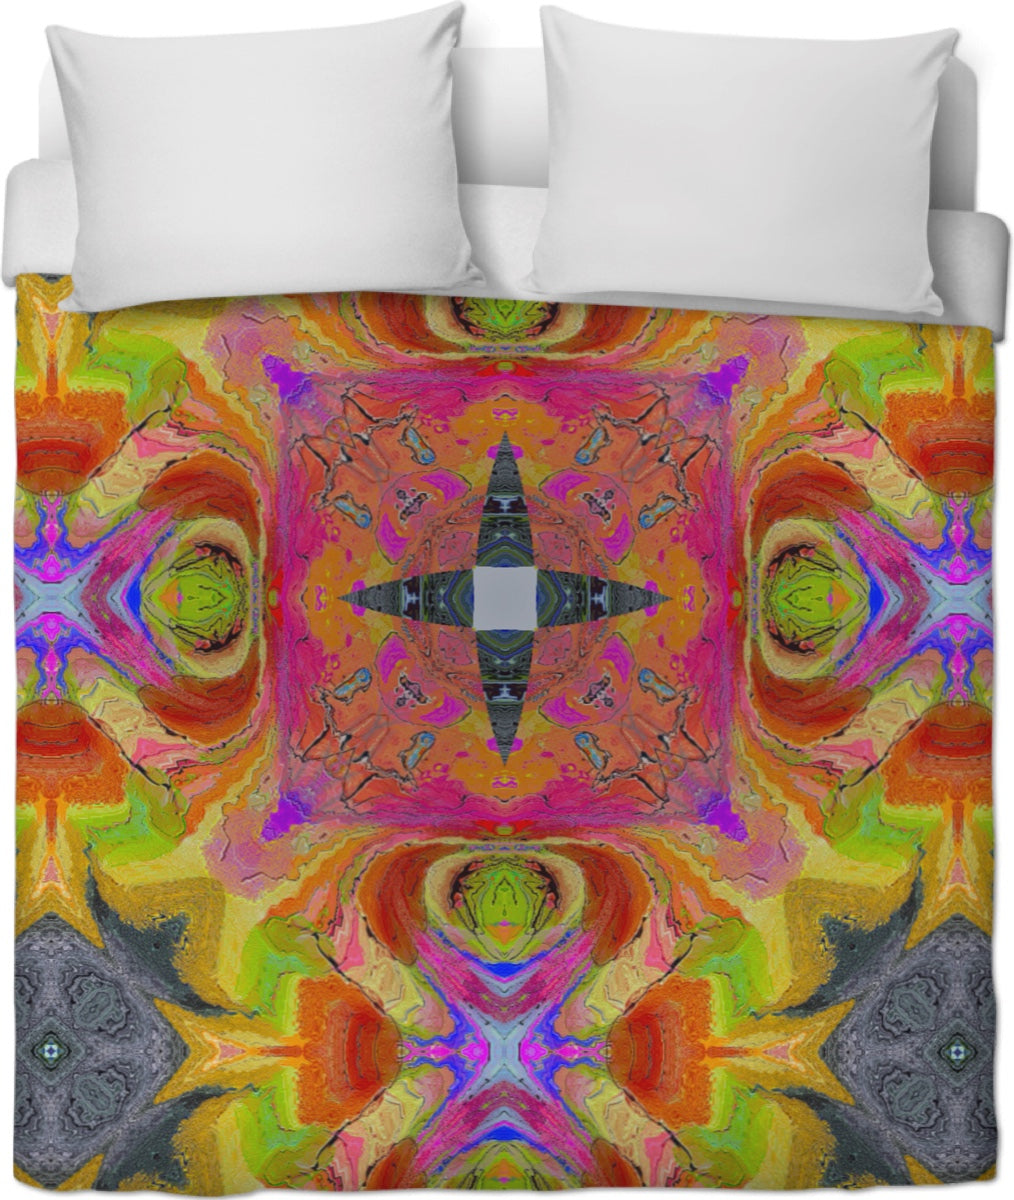 Duvet covers Pattern Collection169